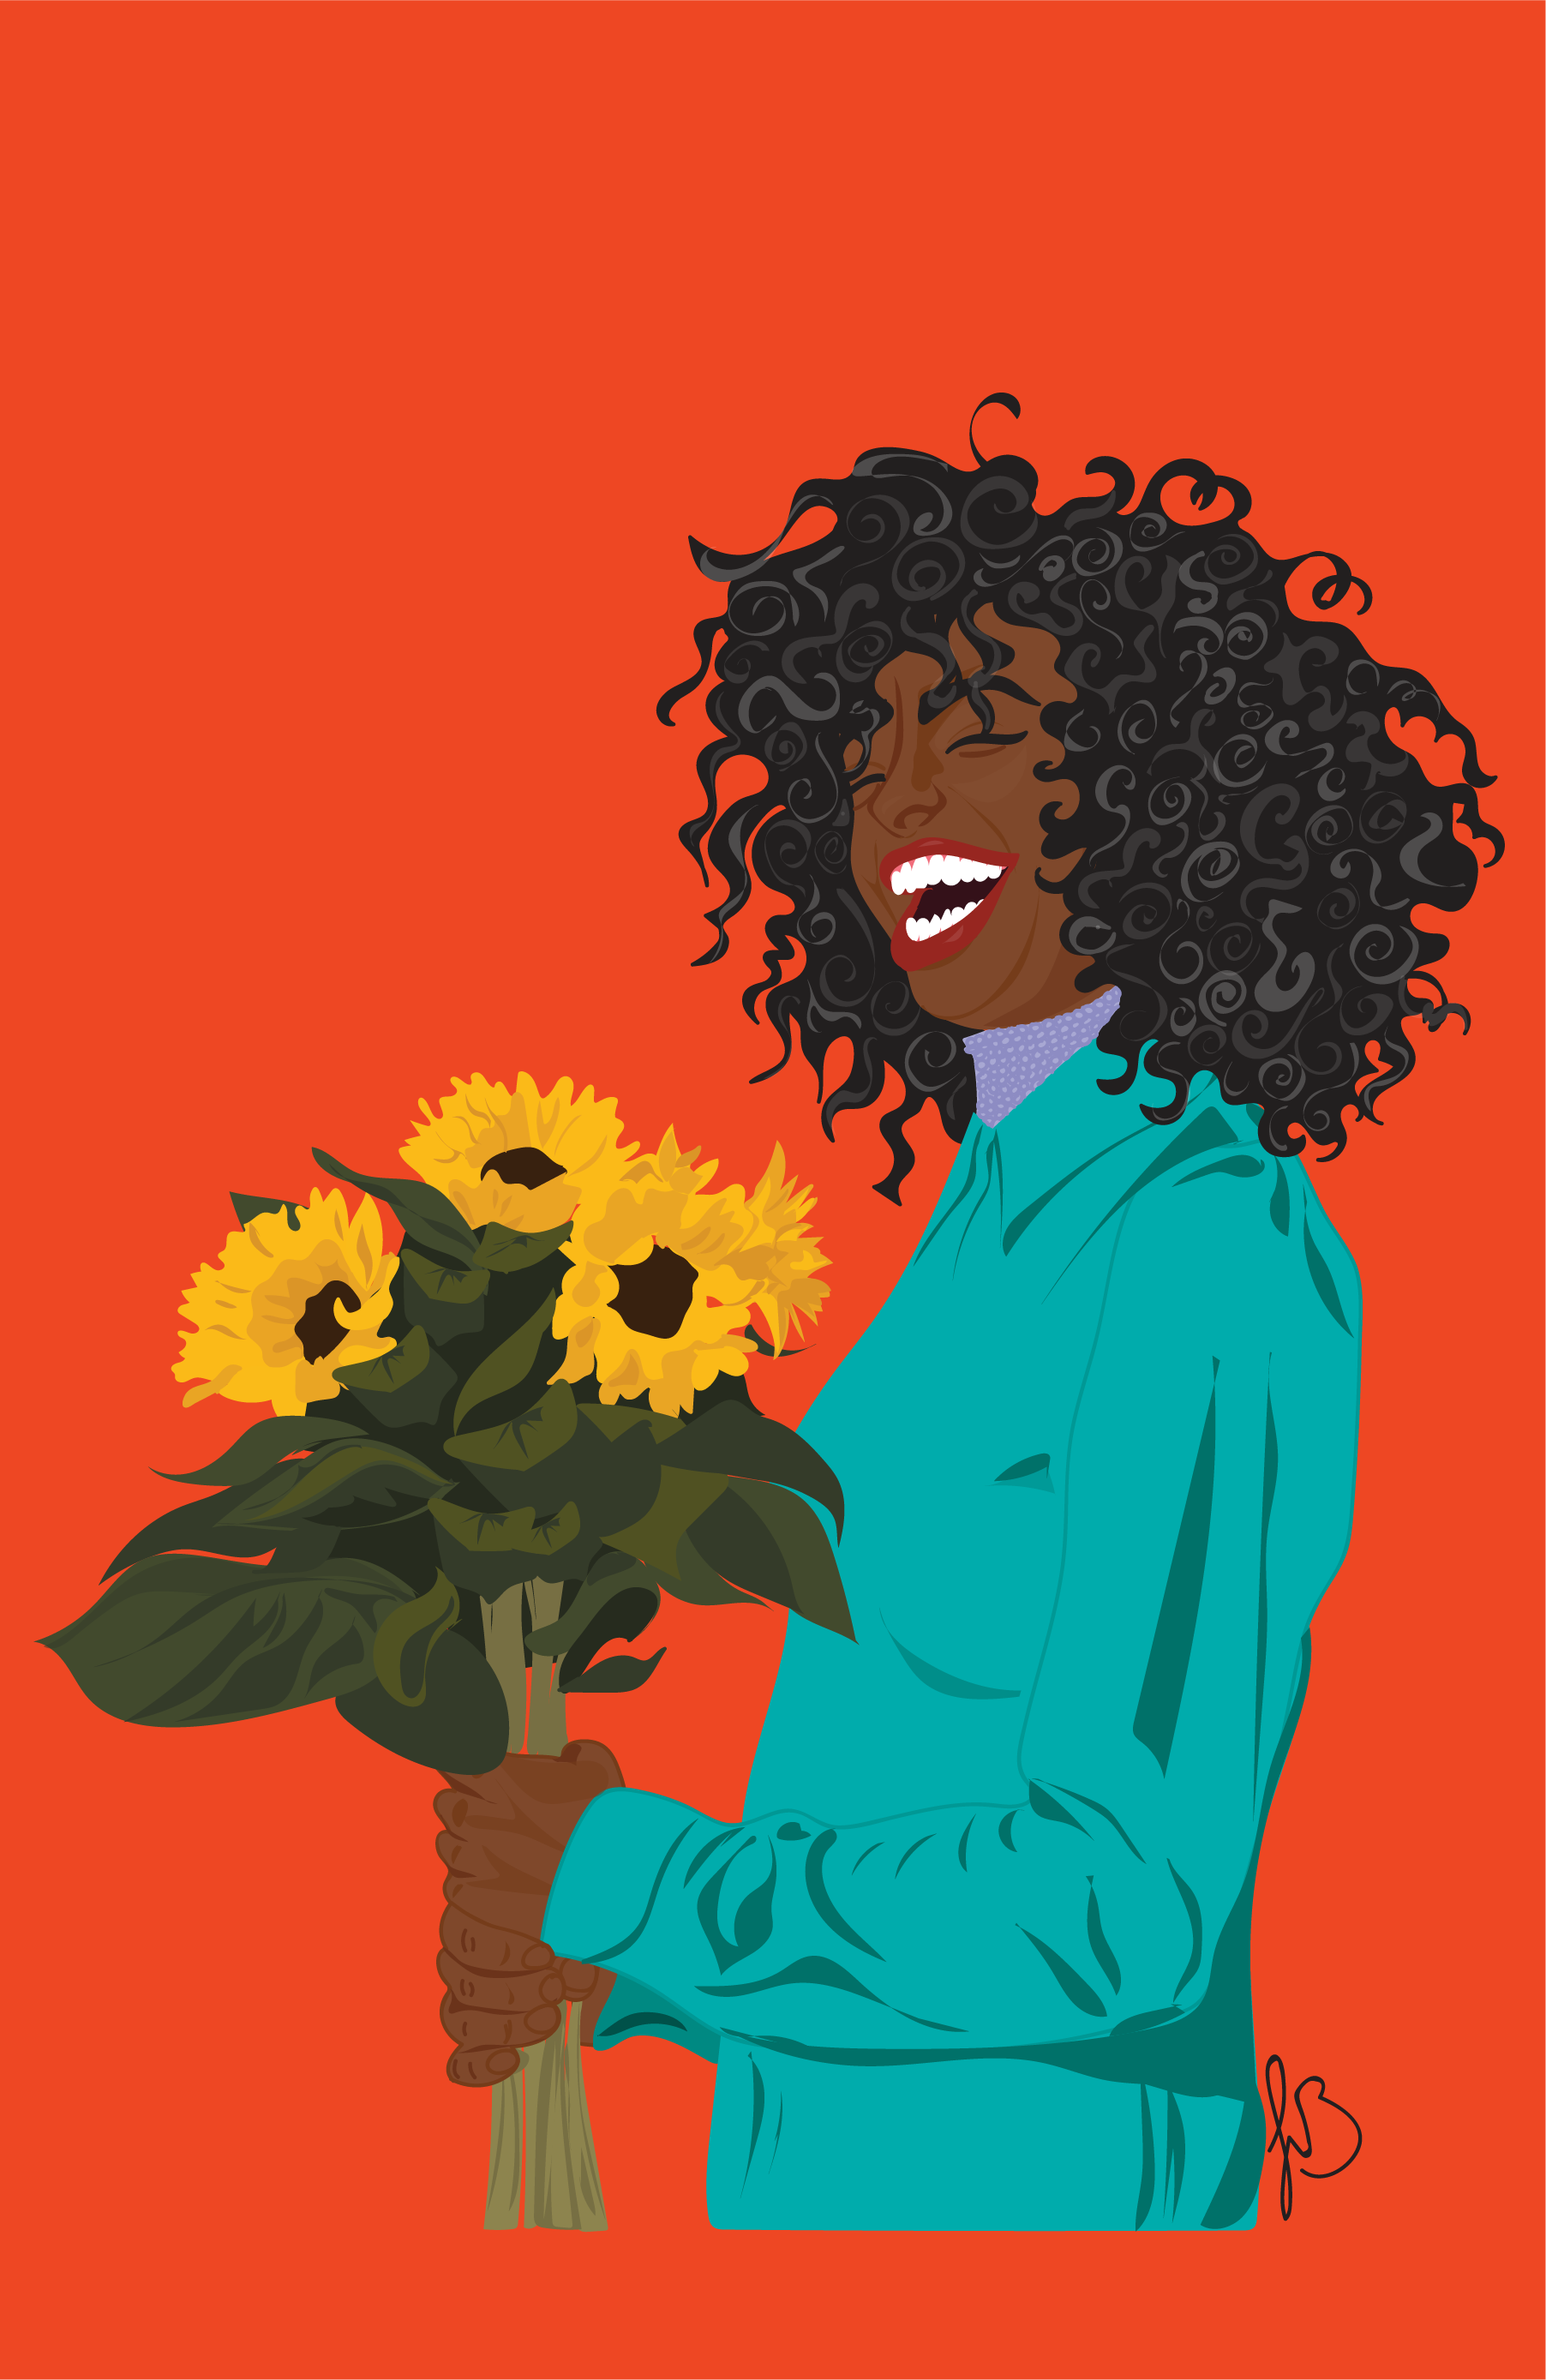 Sunflowers & A Smile By Jolie Brownell.png